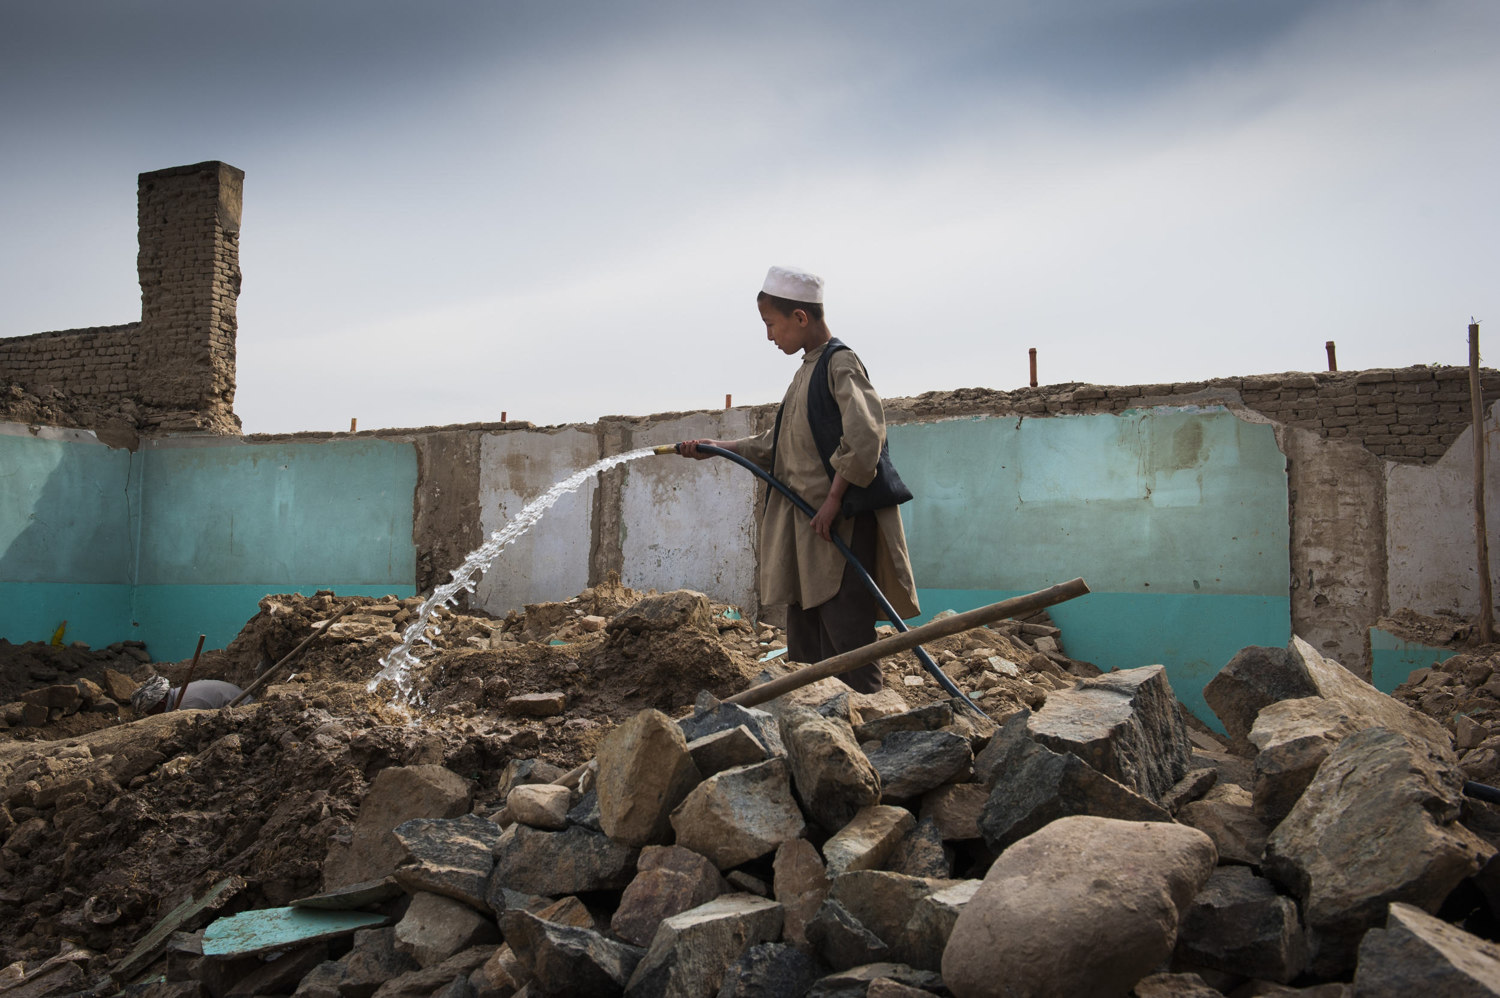 A workers son wets the rocks to cut down on dust and works on other small tasks around the construction site. Many male children are brought to work sites to assist their fathers. Day Laborer's chosen to work on rebuilding a house in  Kabul.